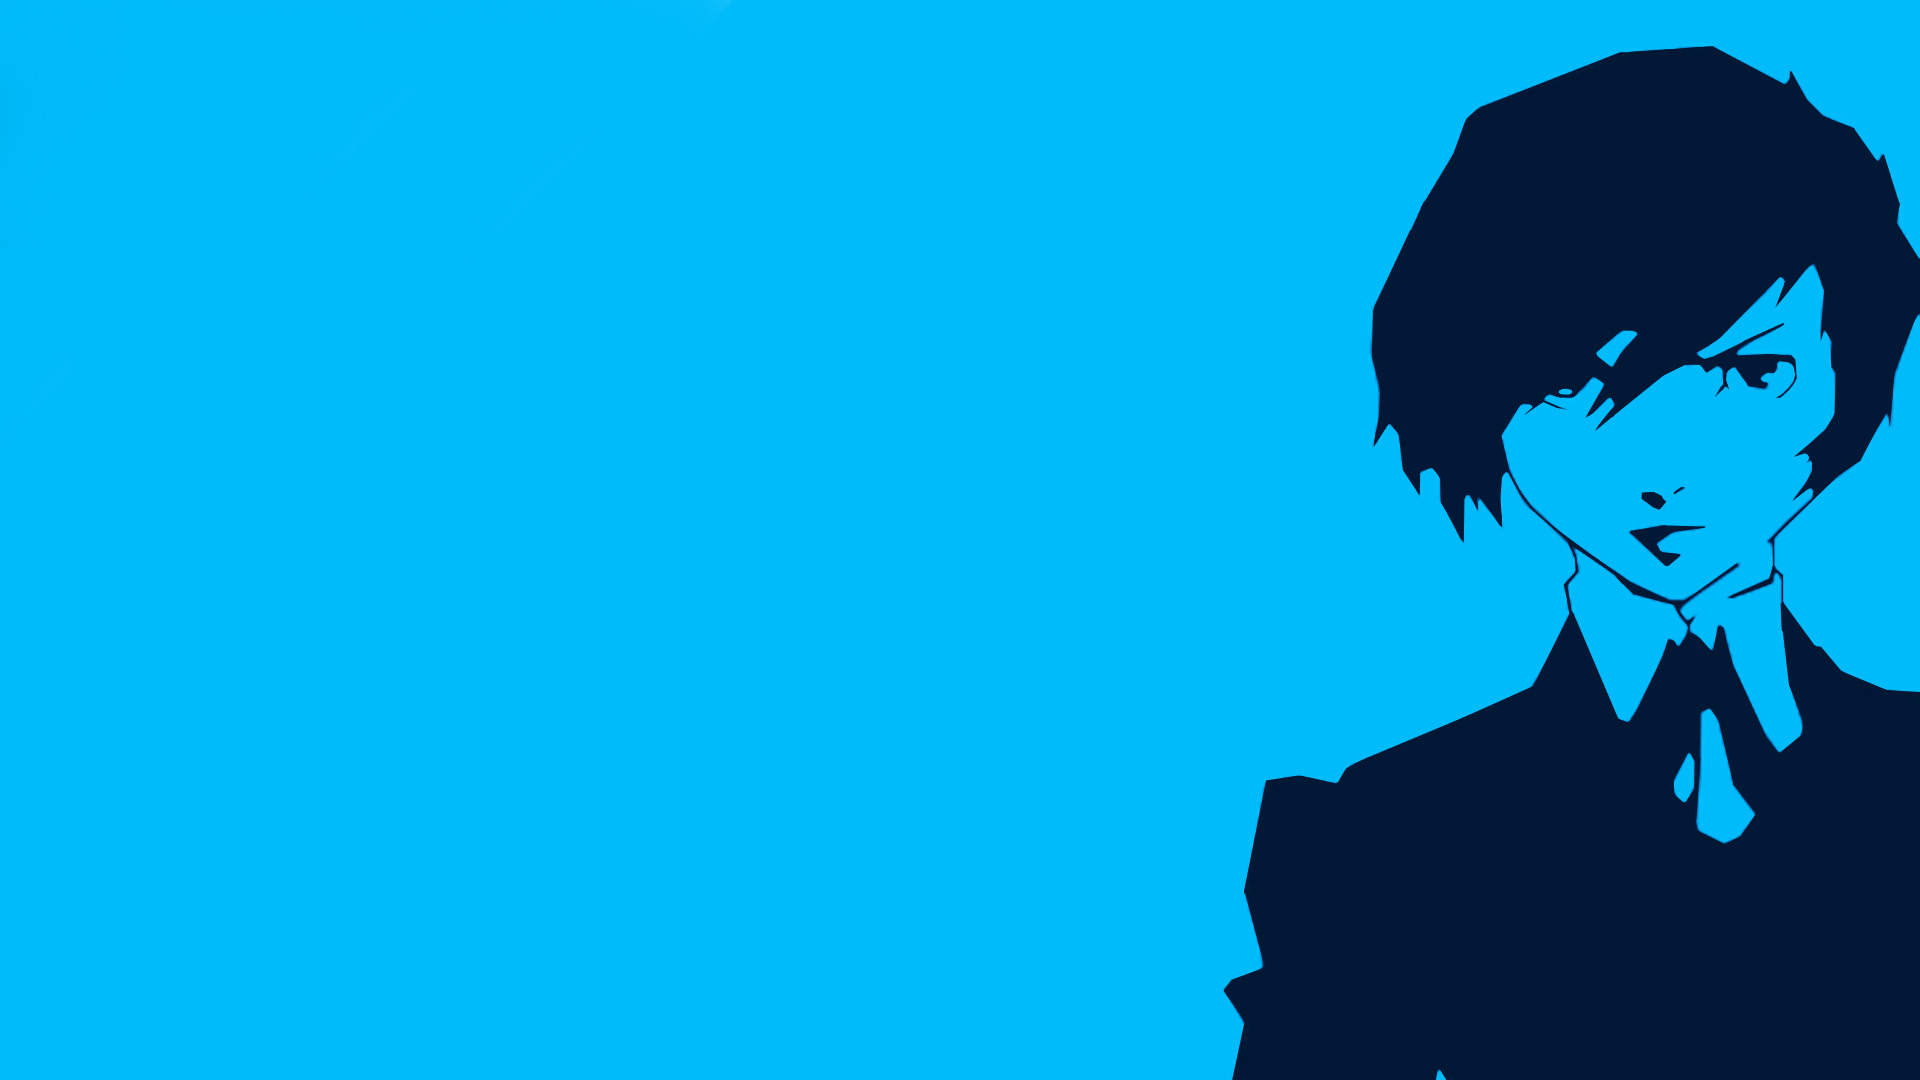 HD Persona 3 Desktop Wallpapers - WallpaperSafari